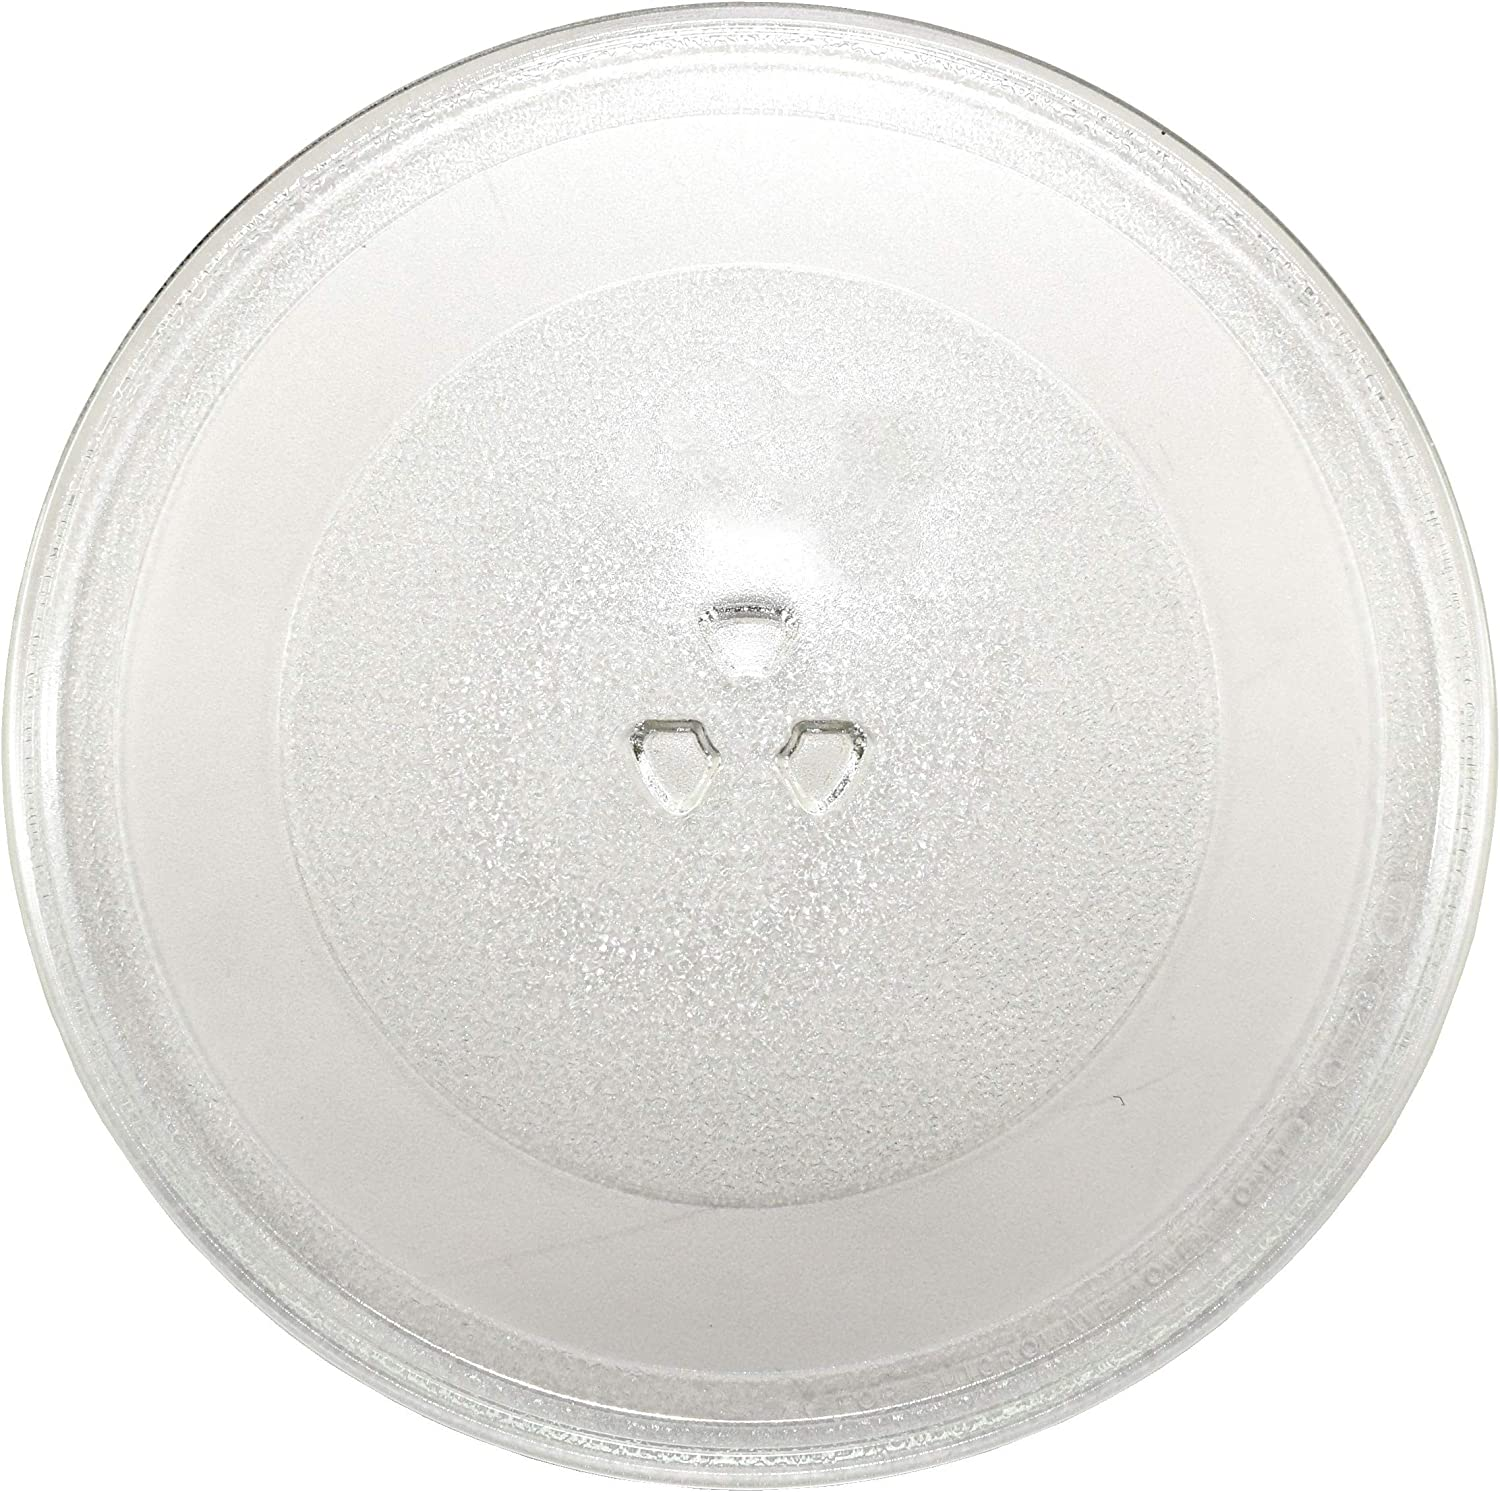 """HQRP 12"""" / 30.5cm Glass Turntable Tray Compatible with Maytag Kenmore Amana, Sears, LG, Whirlpool, Grete Gotye Microwave Oven Cooking Plate 12-inch 305mm"""